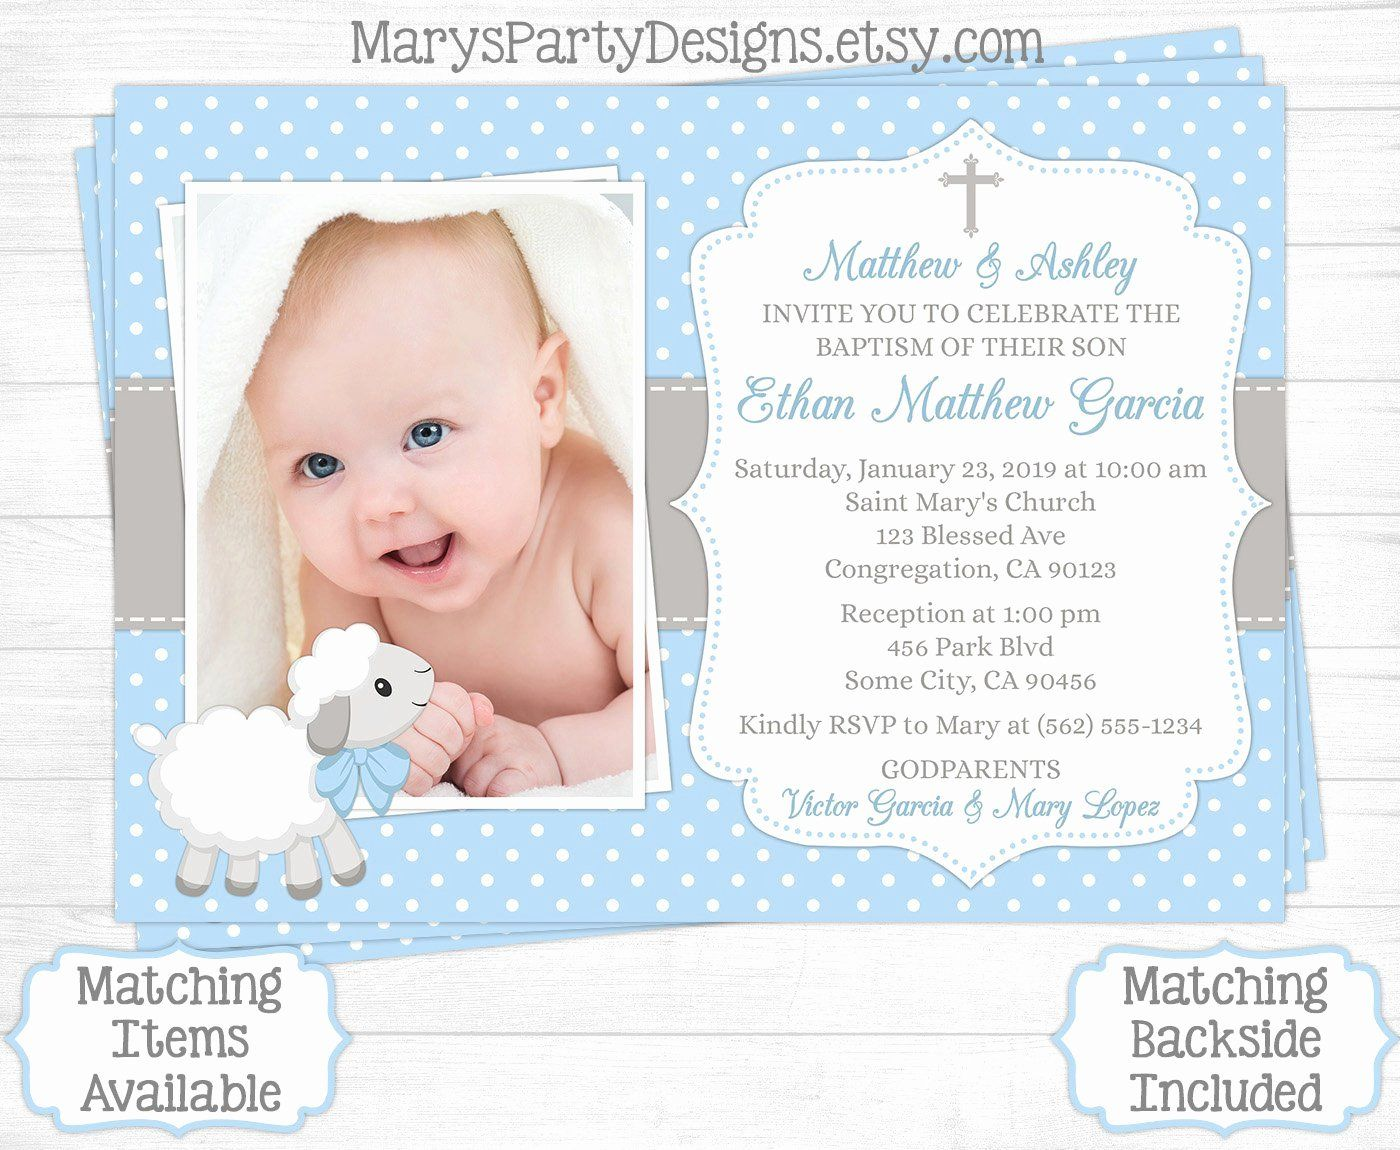 Baptism Invitations Templates Free Lovely Baptism Invitation Template Baptismal Invitat In 2020 Christening Invitations Boy Baptism Invitations Christening Invitations Baptism invitation template microsoft word